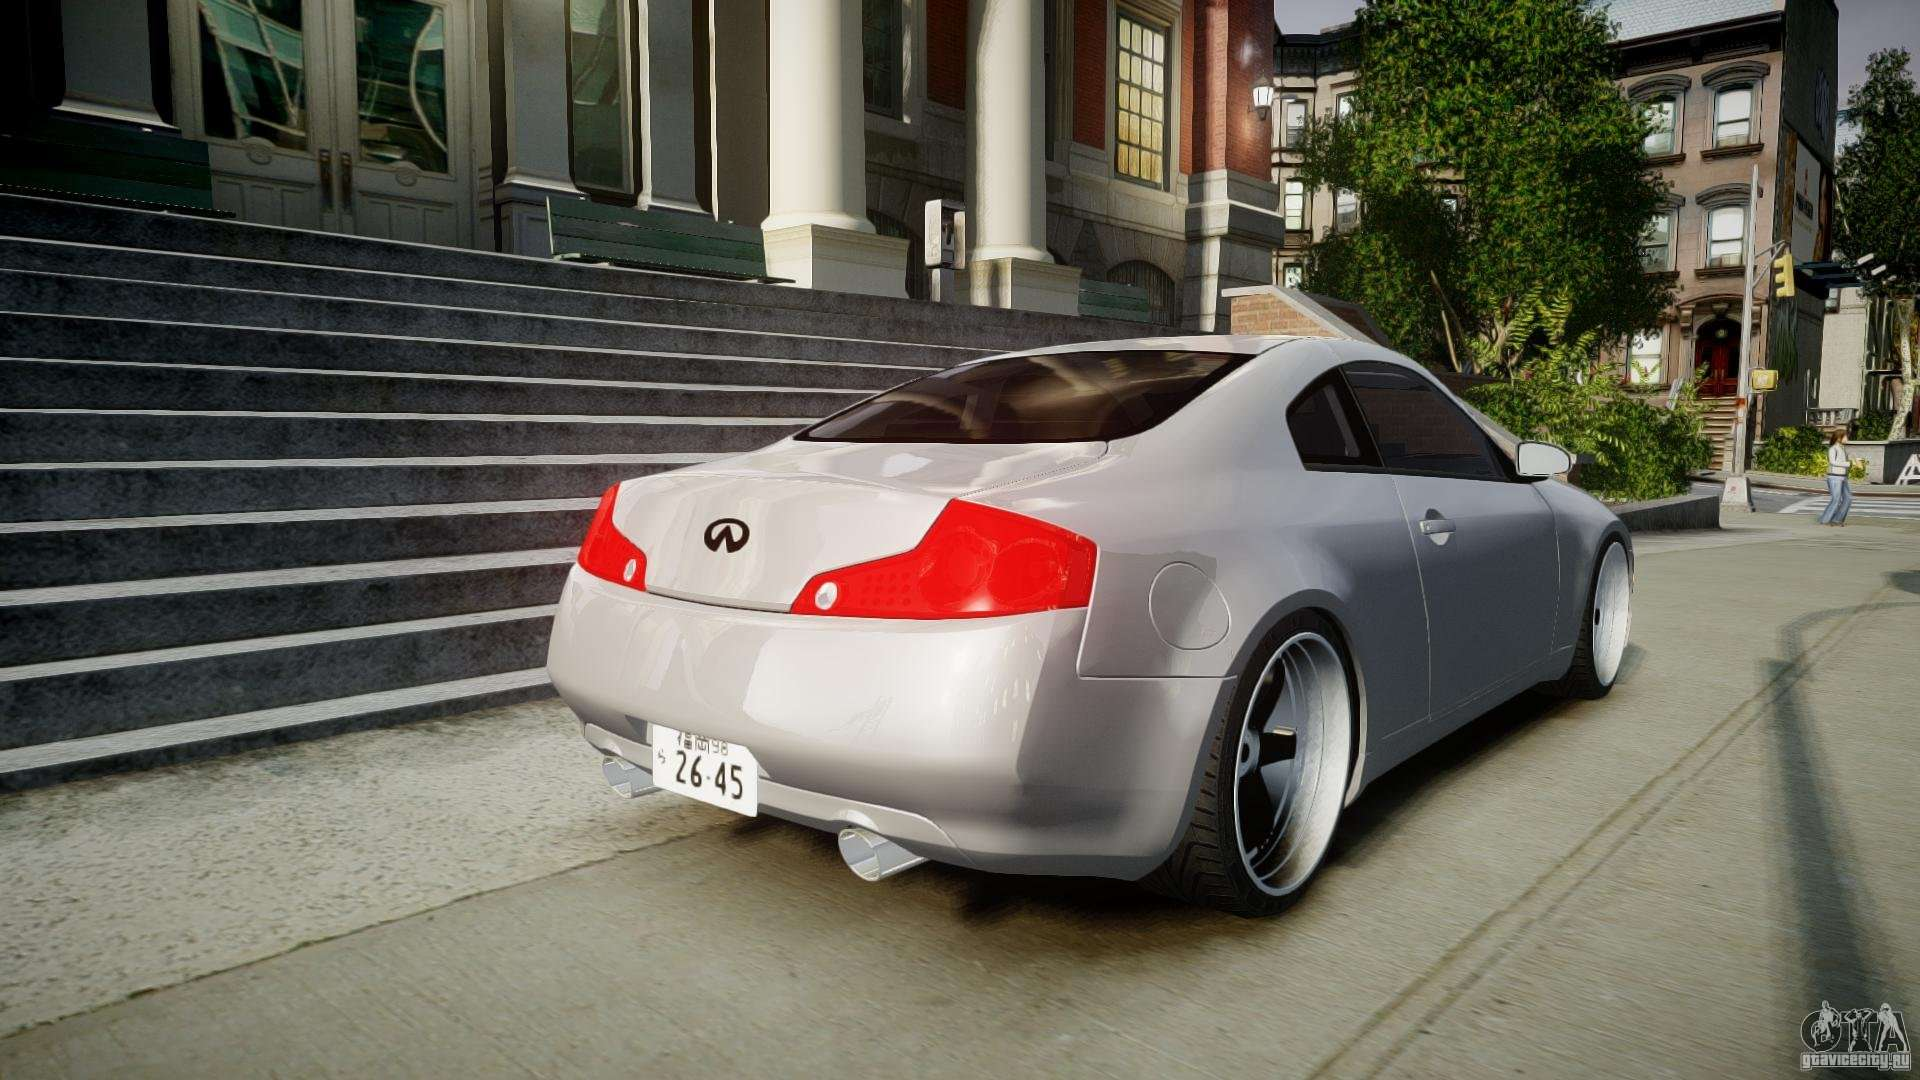 2003 Infiniti G35 Coupe >> Infiniti G35 Coupe 2003 JDM Tune for GTA 4